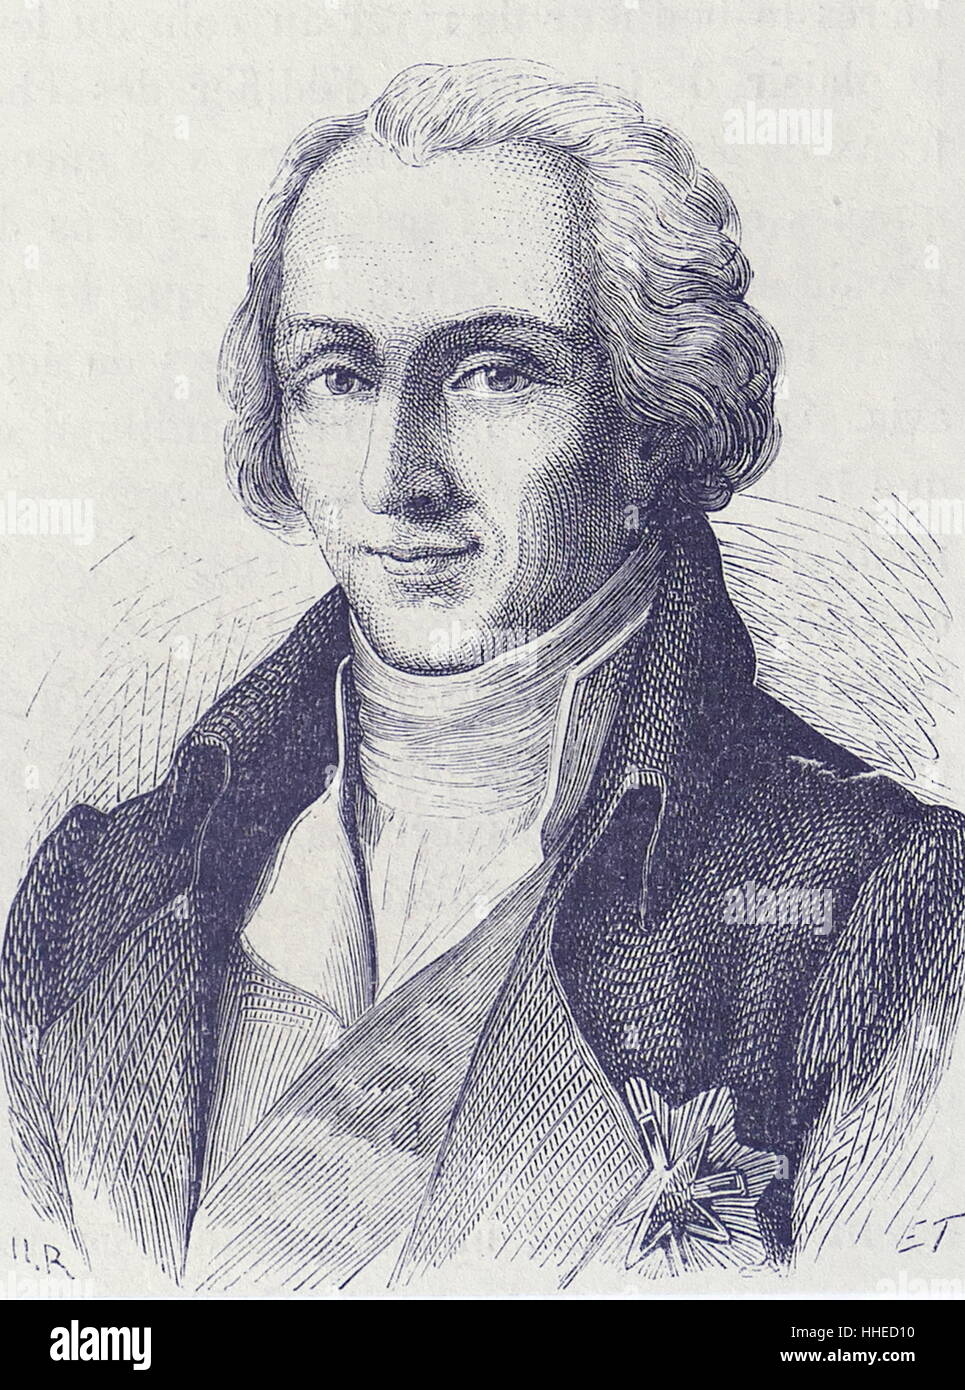 Benjamin Thompson Rumford (Count) 1753-1814. Anglo-American scientist and administrator. Friction theory of heat - Stock Image